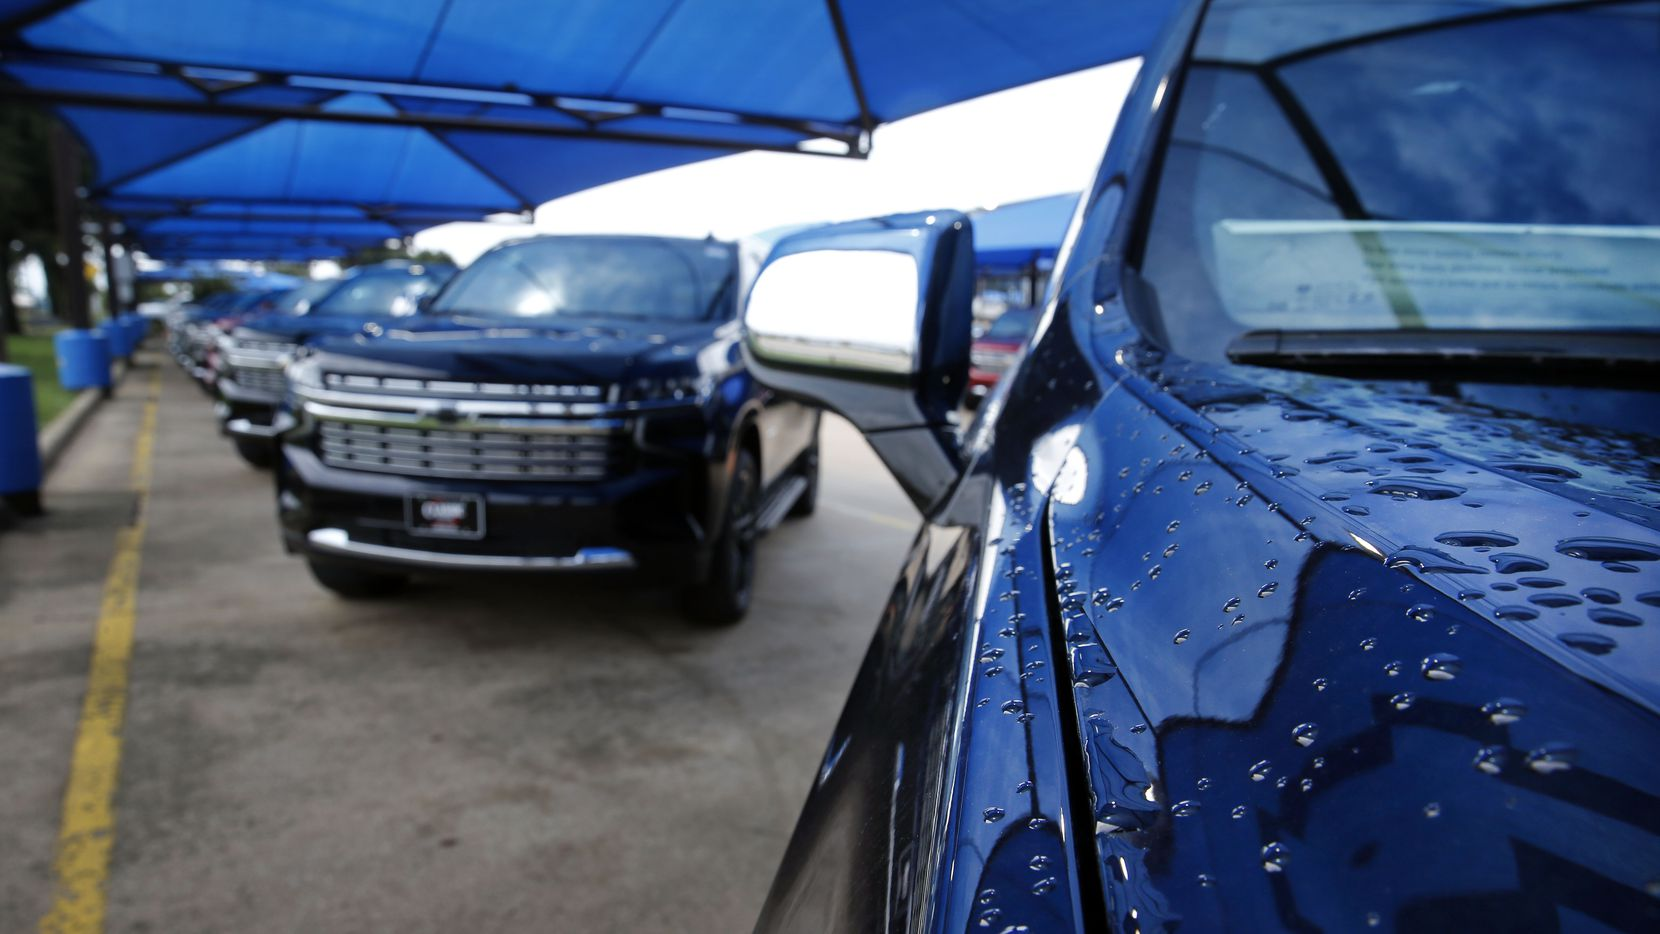 Rains drops cover the hood of a General Motors' Chevrolet Tahoe sport utility vehicle at Classic Chevrolet in Grapevine, Wednesday, September 2, 2020. (Tom Fox/The Dallas Morning News)